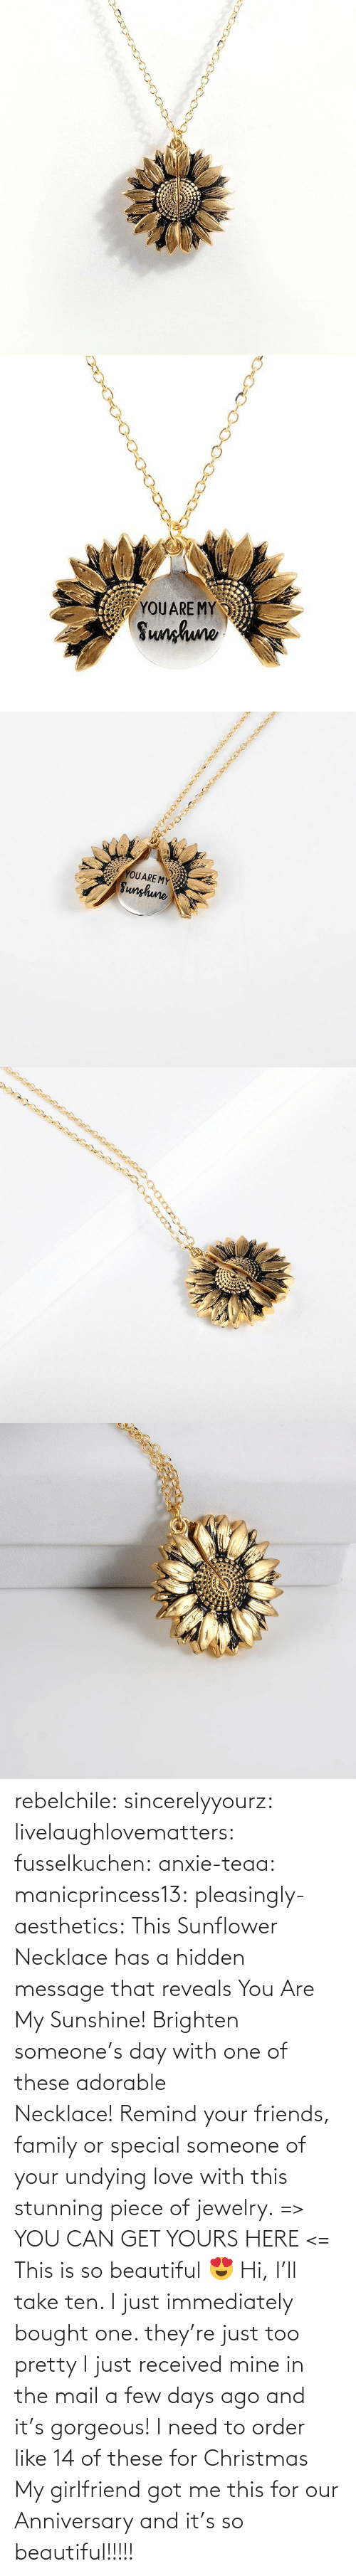 Gt: rebelchile:  sincerelyyourz:  livelaughlovematters:  fusselkuchen:  anxie-teaa:   manicprincess13:   pleasingly-aesthetics:  This Sunflower Necklace has a hidden message that reveals You Are My Sunshine! Brighten someone's day with one of these adorable Necklace! Remind your friends, family or special someone of your undying love with this stunning piece of jewelry. => YOU CAN GET YOURS HERE <=   This is so beautiful 😍    Hi, I'll take ten.    I just immediately bought one. they're just too pretty   I just received mine in the mail a few days ago and it's gorgeous!   I need to order like 14 of these for Christmas    My girlfriend got me this for our Anniversary and it's so beautiful!!!!!